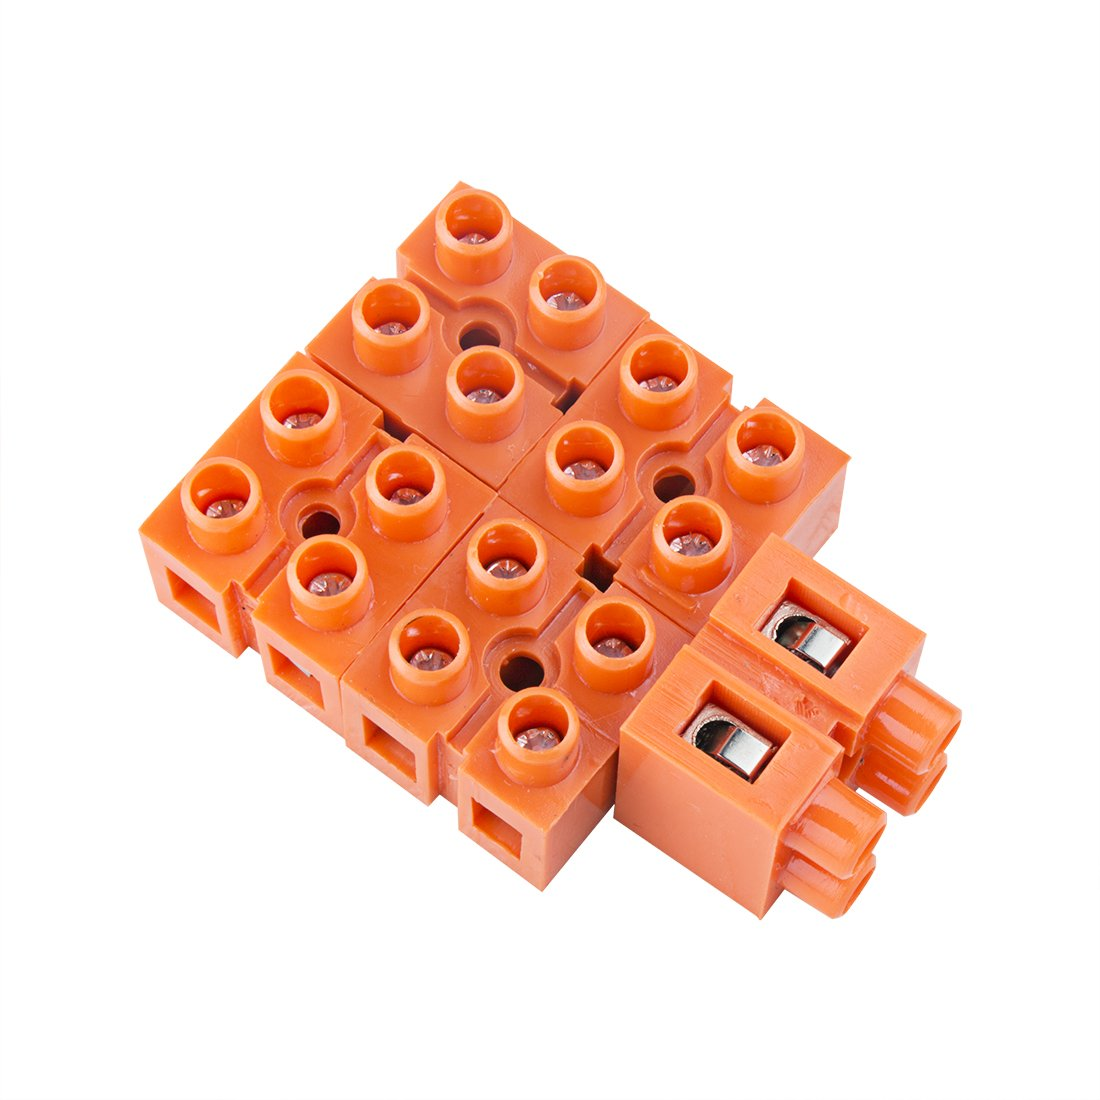 uxcell 600V 36A Dual Row 2 Positions Screw Terminal Electric Barrier Strip Block 5pcs